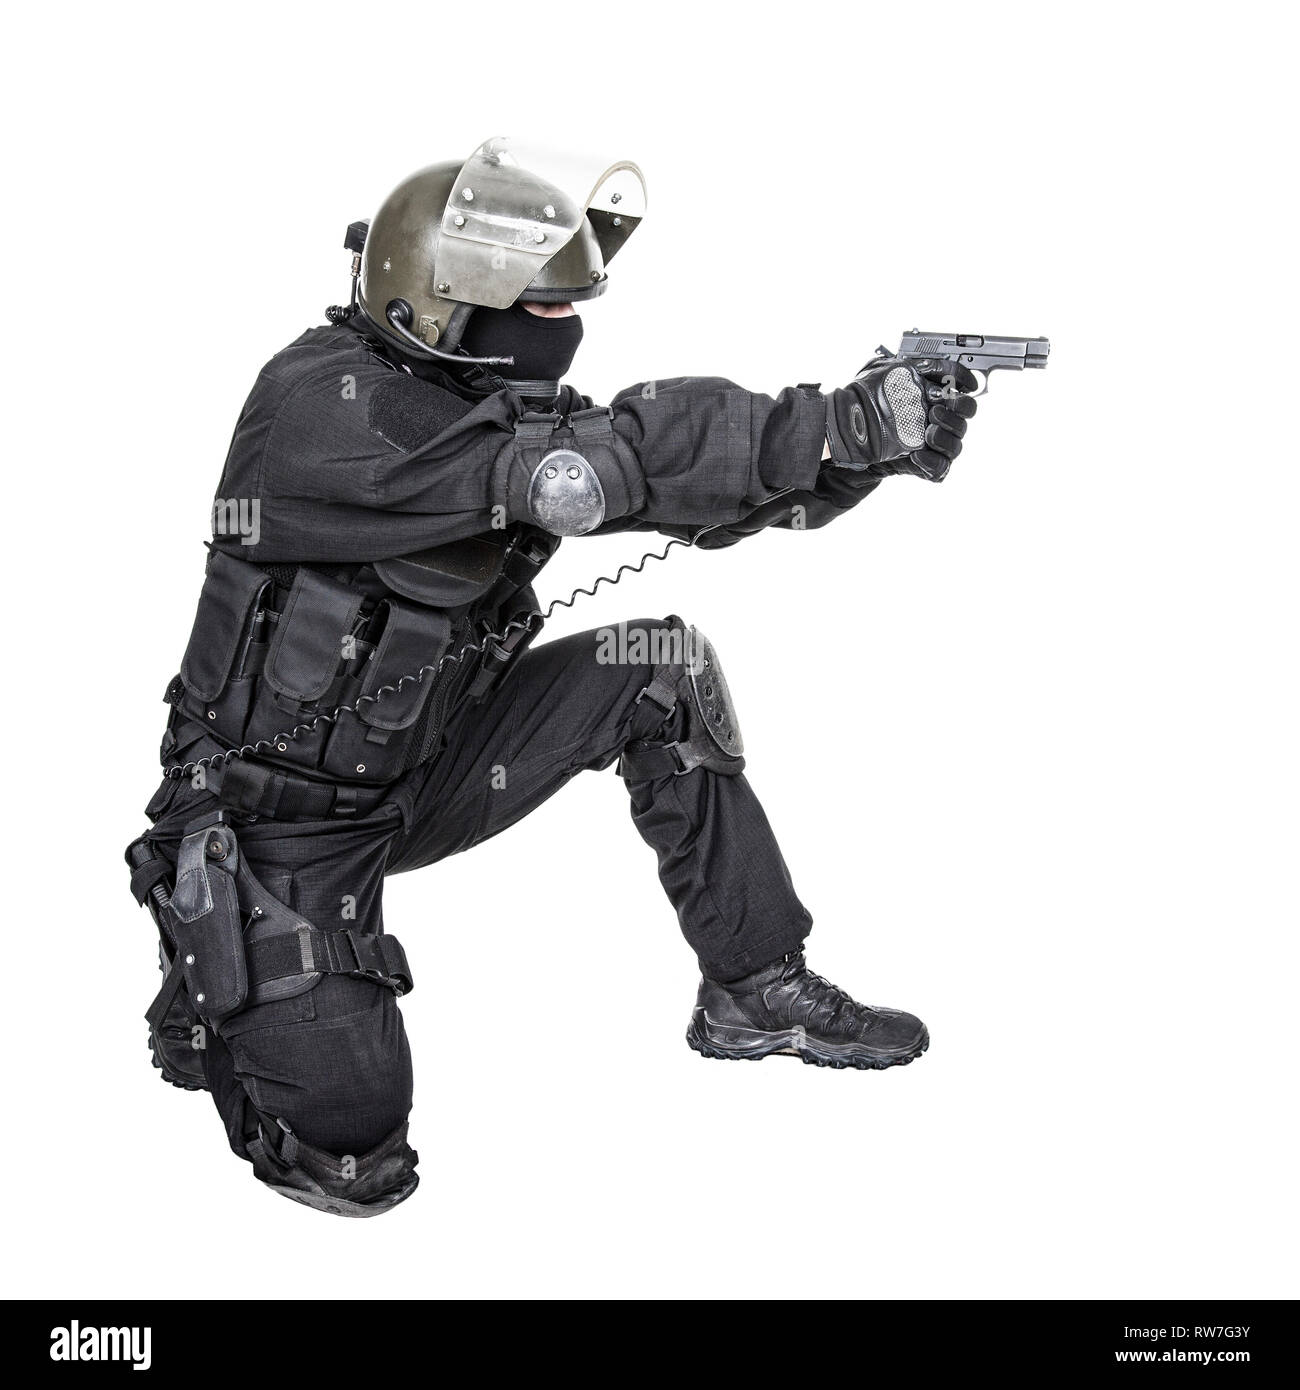 Spec ops soldier in black uniform and face mask aiming his